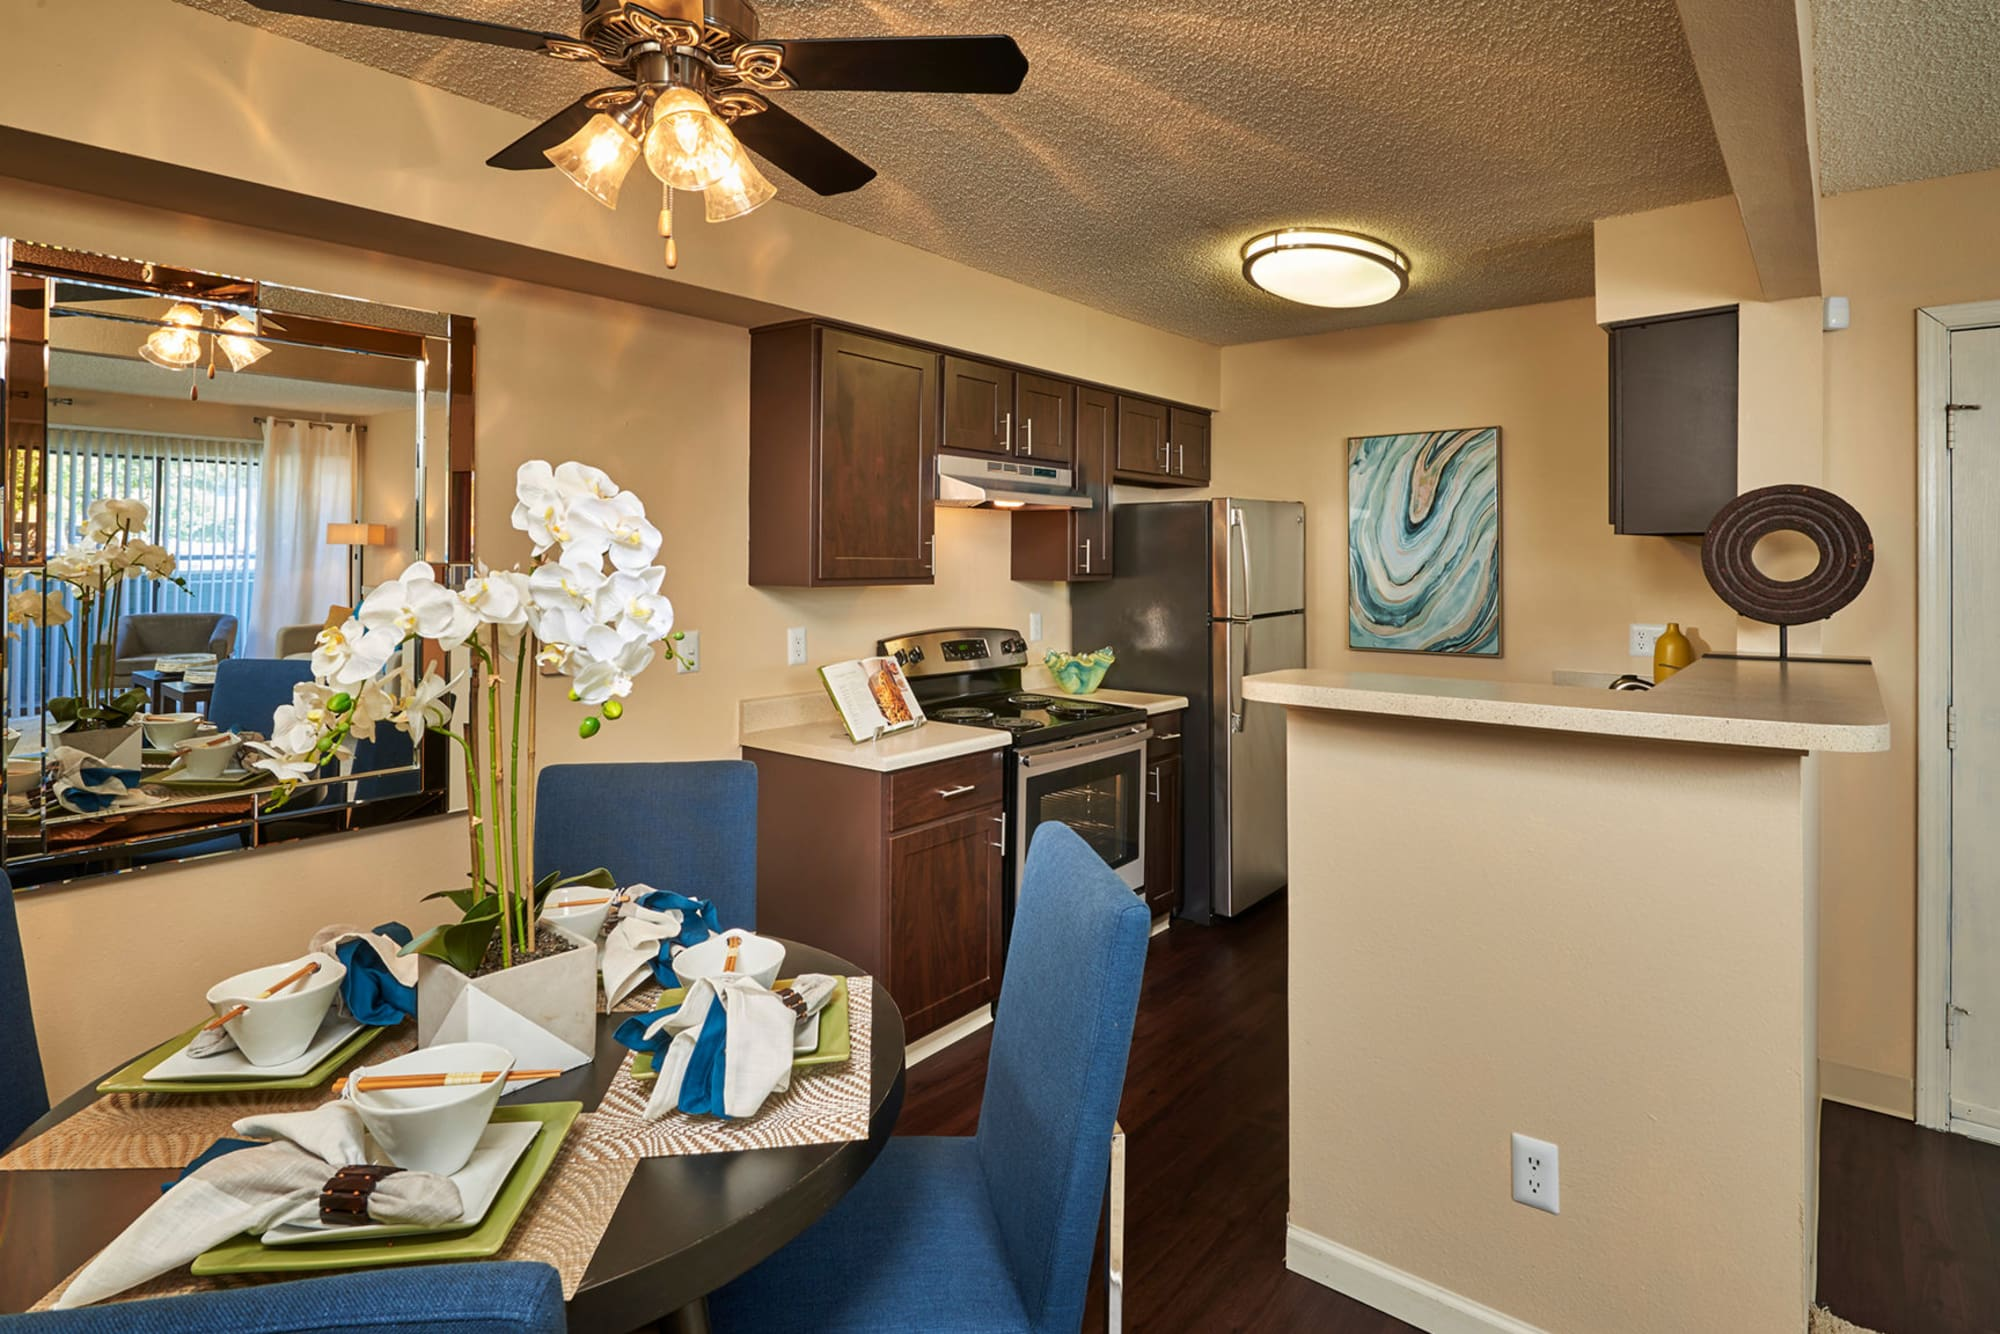 Kitchen Dining Room Combo - brown at Alton Green Apartments in Denver, CO